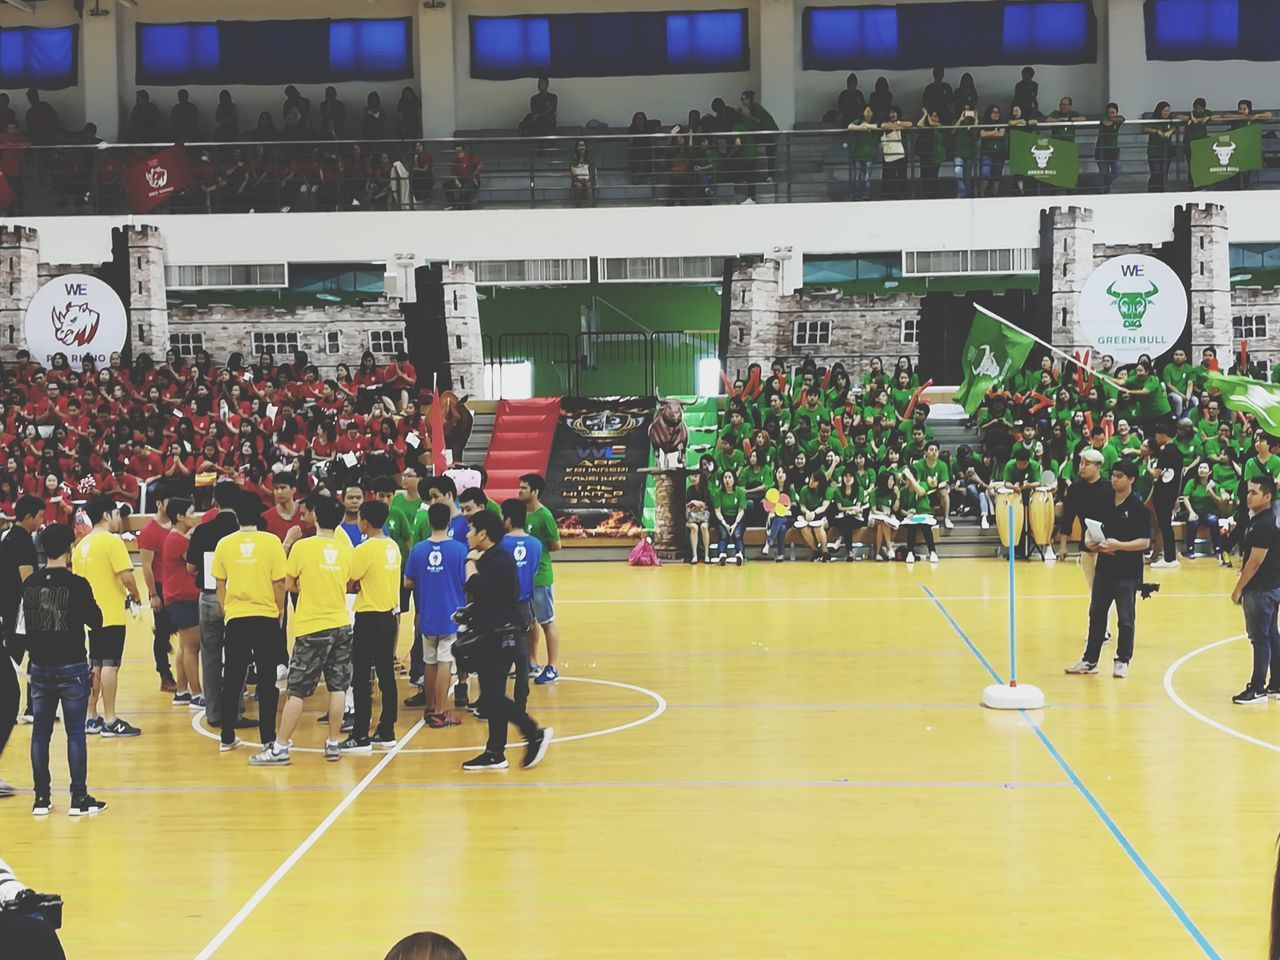 Sport day Sport Stadium Large Group Of People Crowd Gym Court People Sports Team Competitive Sport Teamwork Match - Sport Eyeemthailand Huaweiphotography EyeEm Gallery